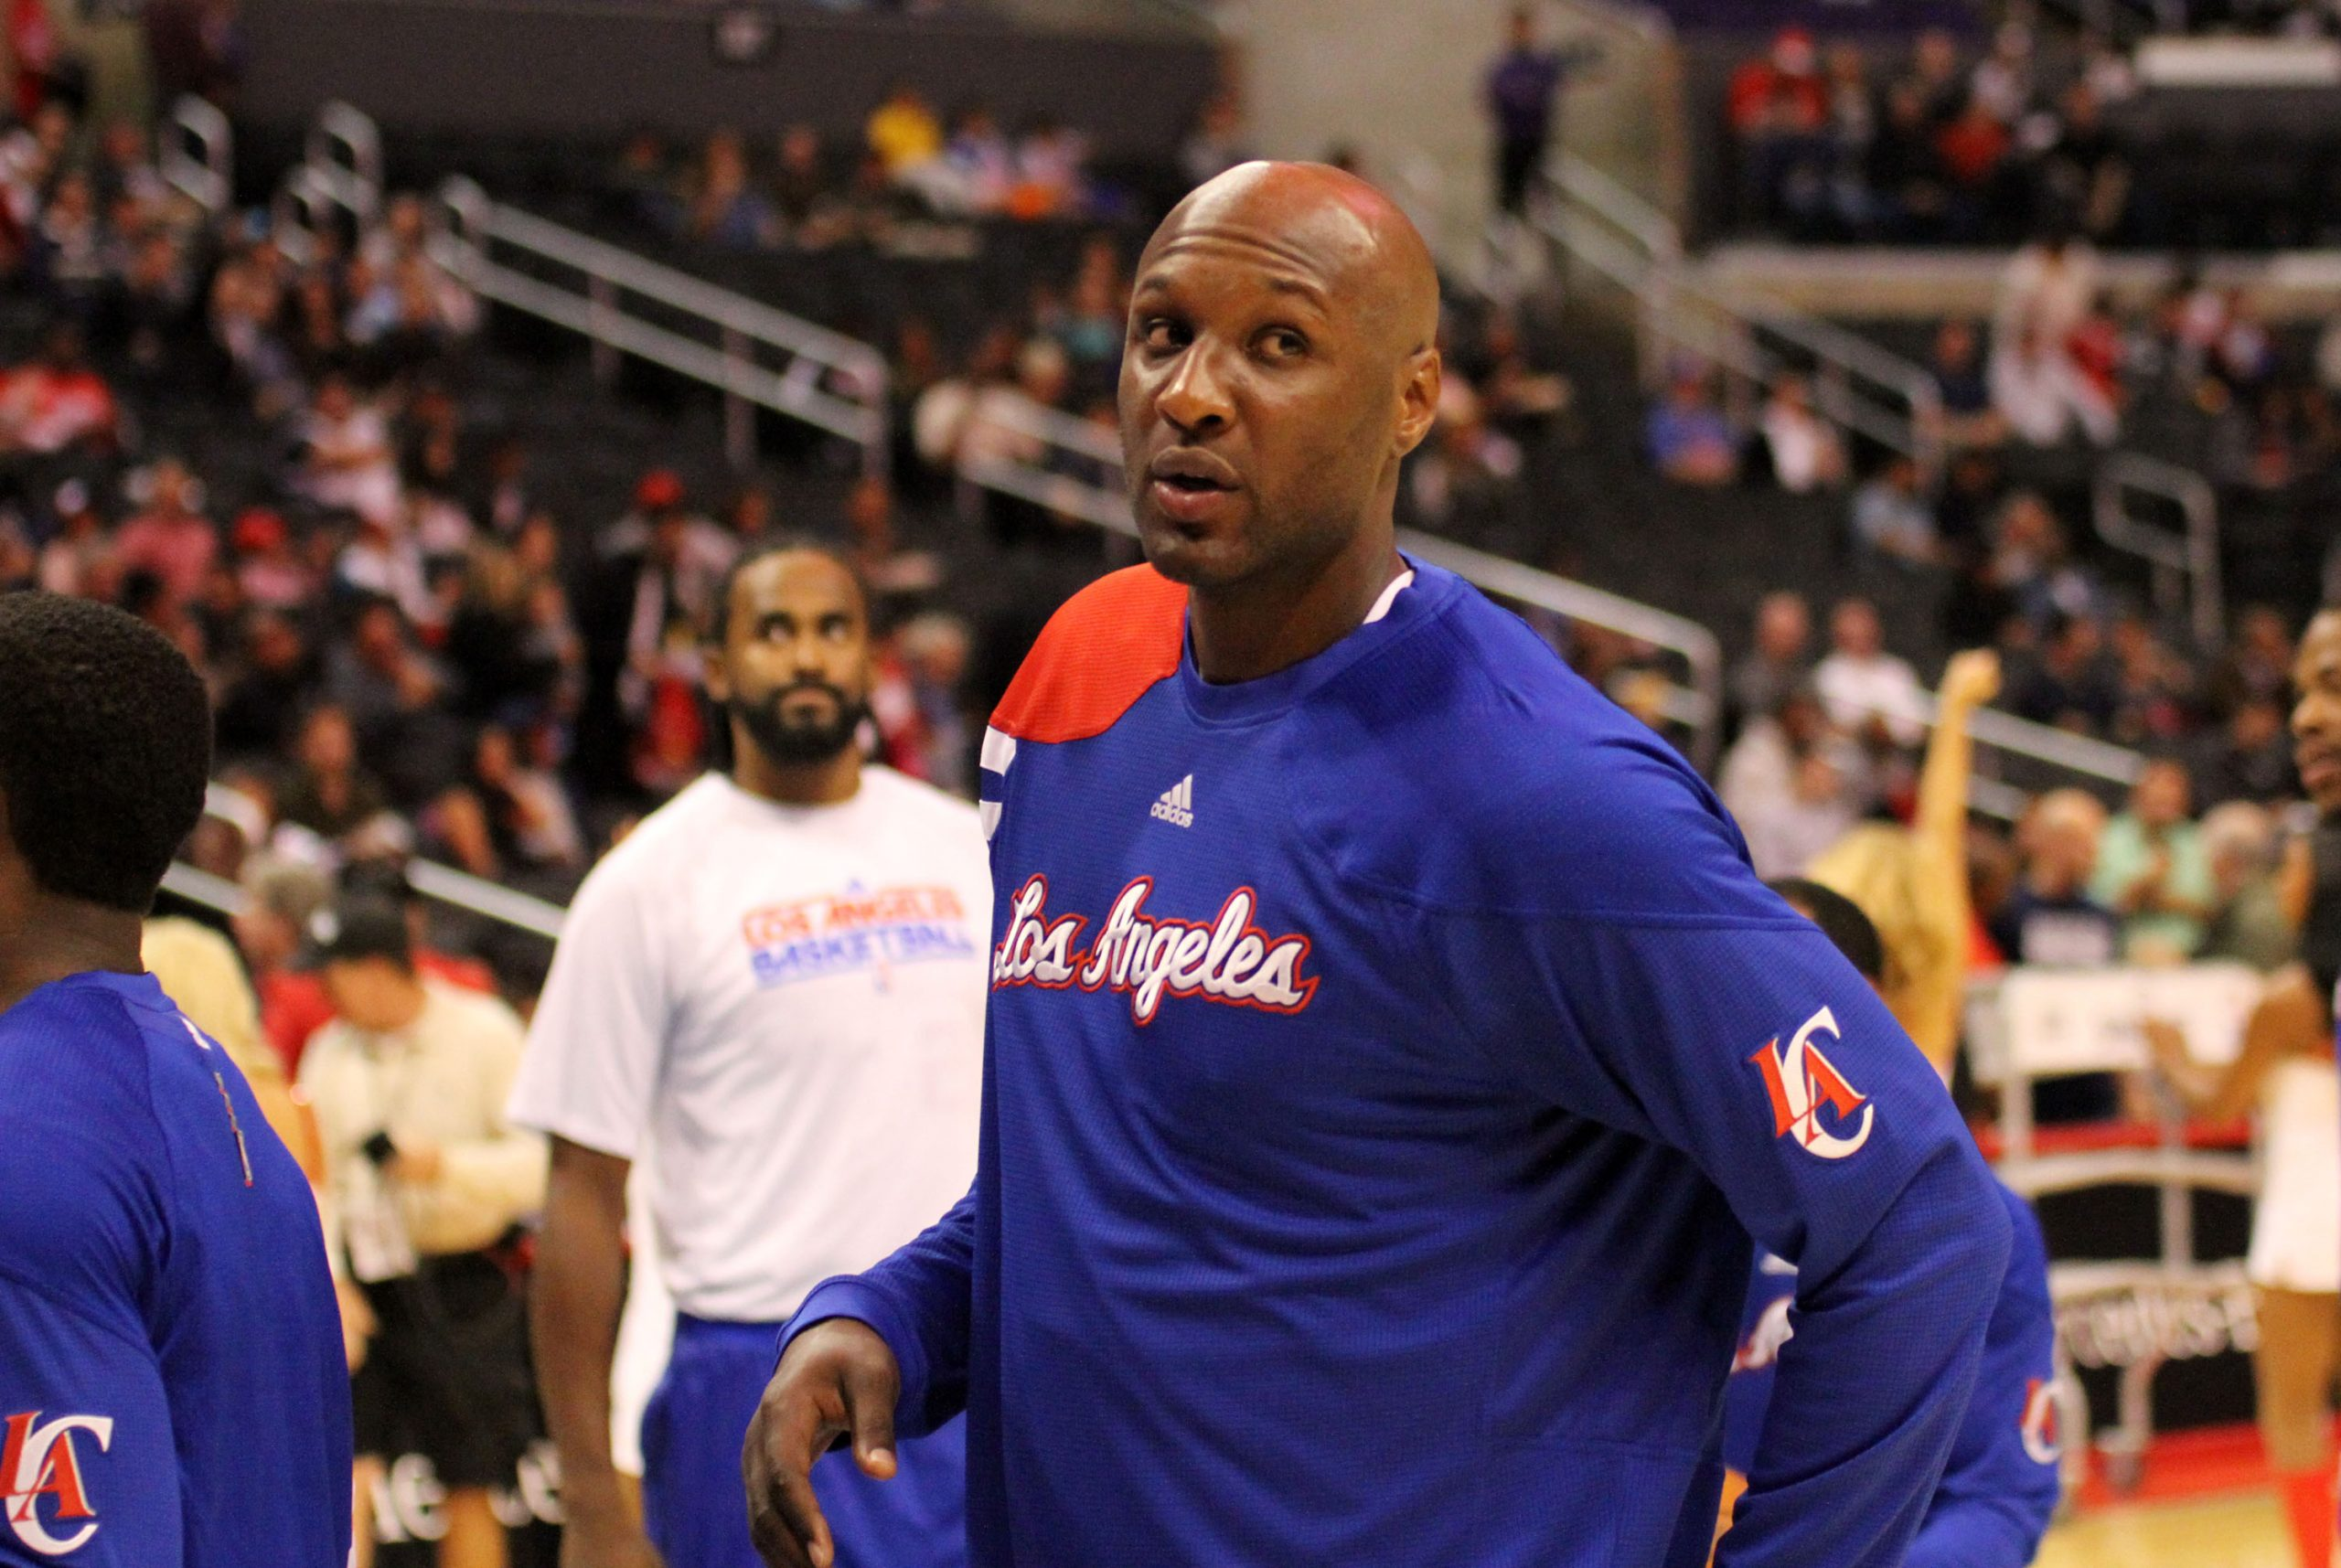 Lamar Odom Re-Emerging as a Force